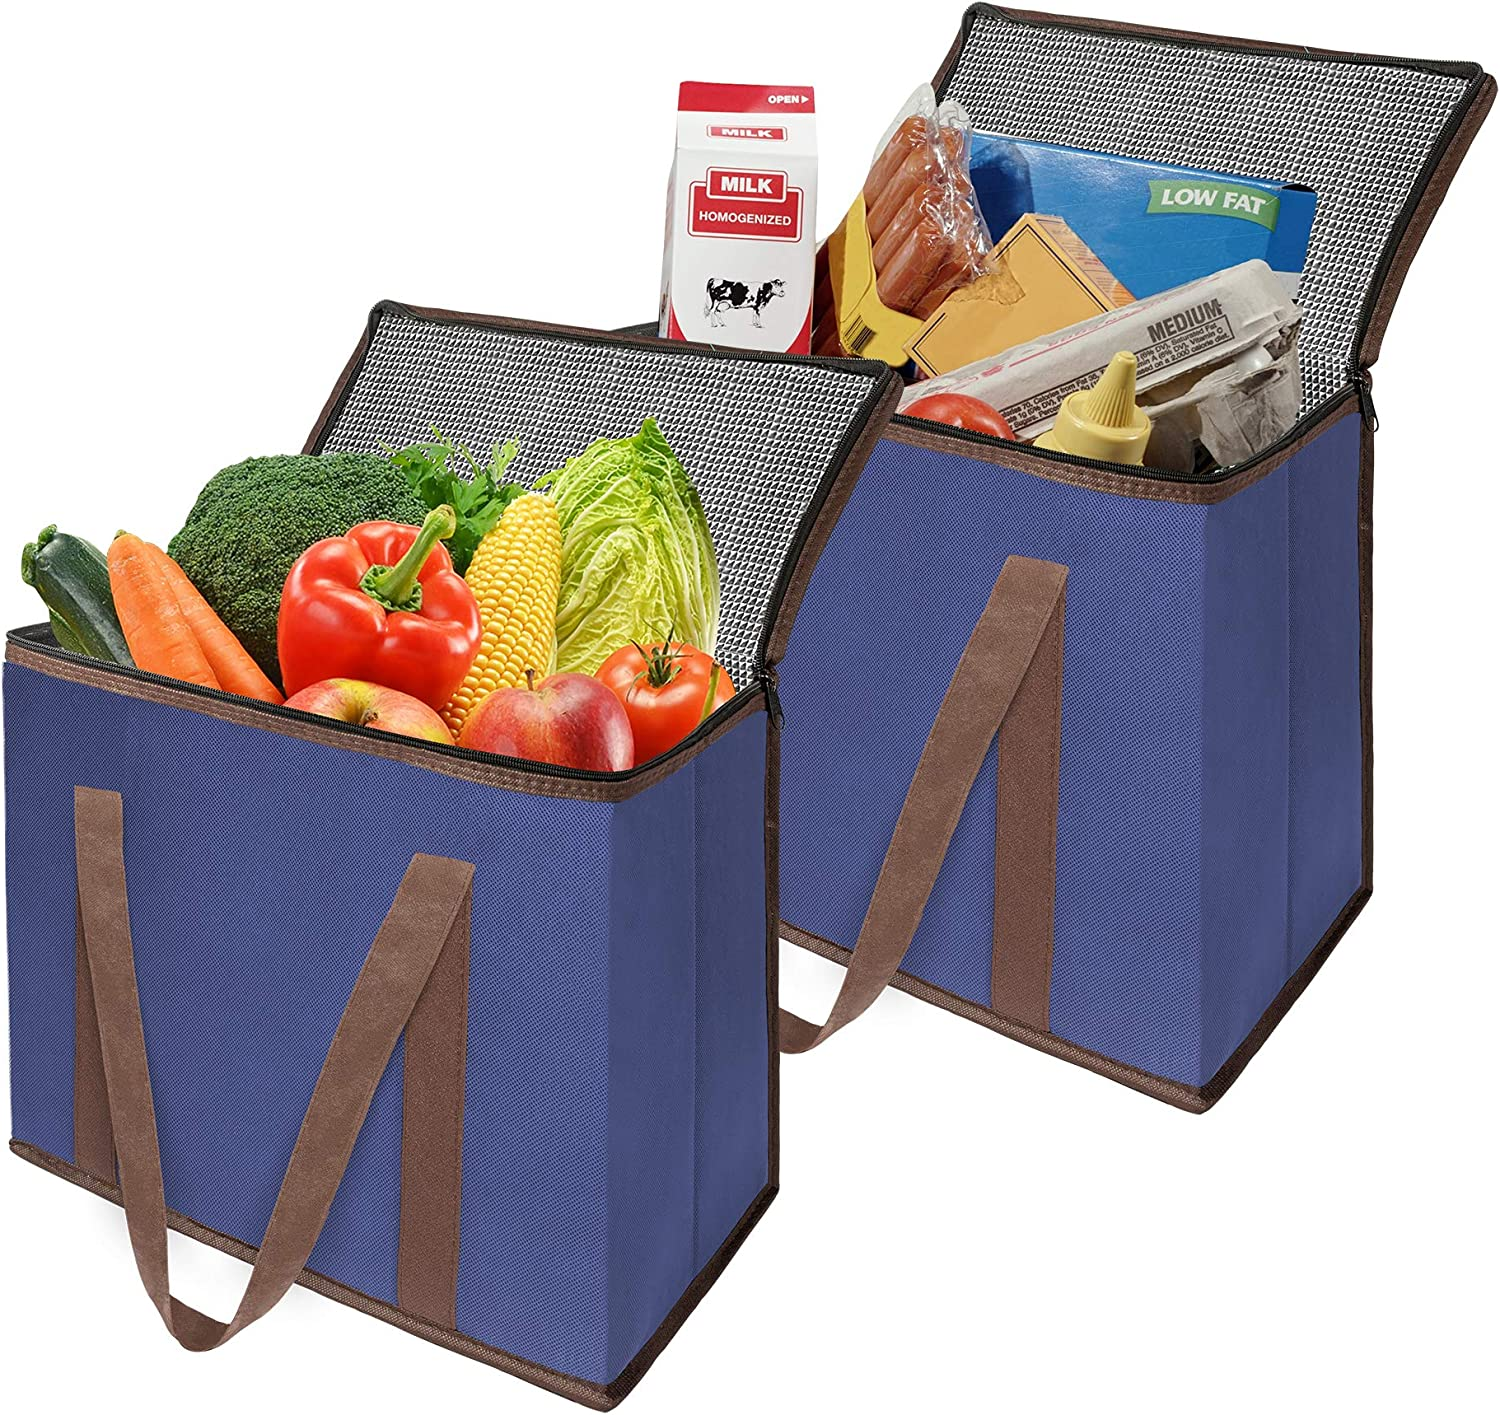 Spogears Reusable Insulated Grocery Bag with Zippered Top Set of 2 X- Large Heavy Duty Insulated Shopping Cooler Bags for Food Transport or Delivery for Hot and Cold Food Items